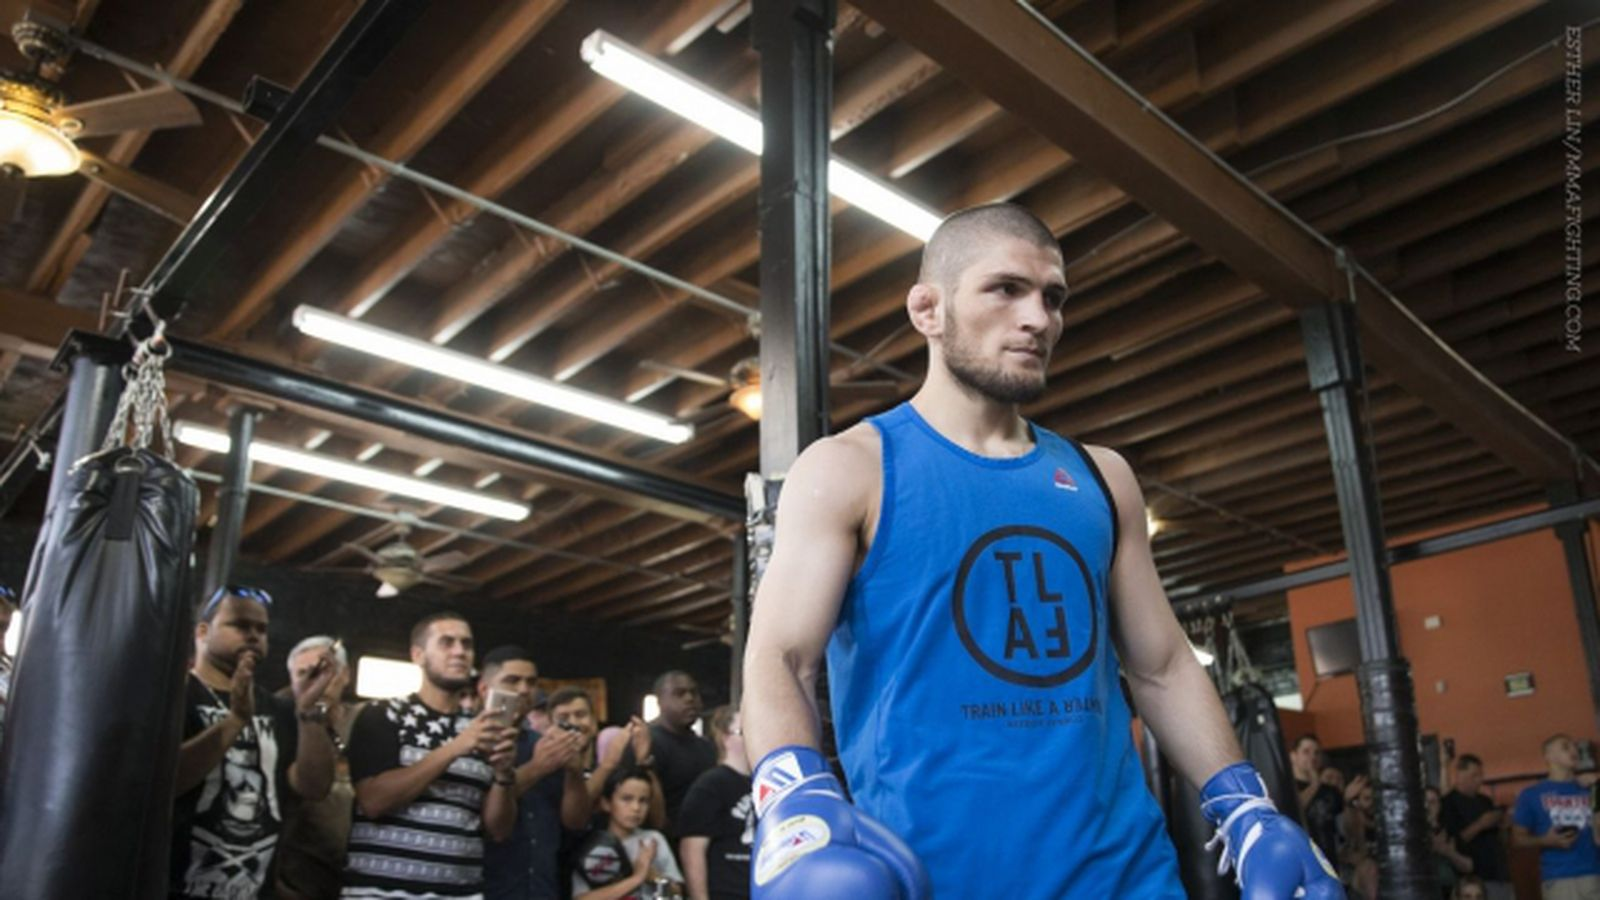 Video! Does It Look Like Khabib Is Ready For McGregor?